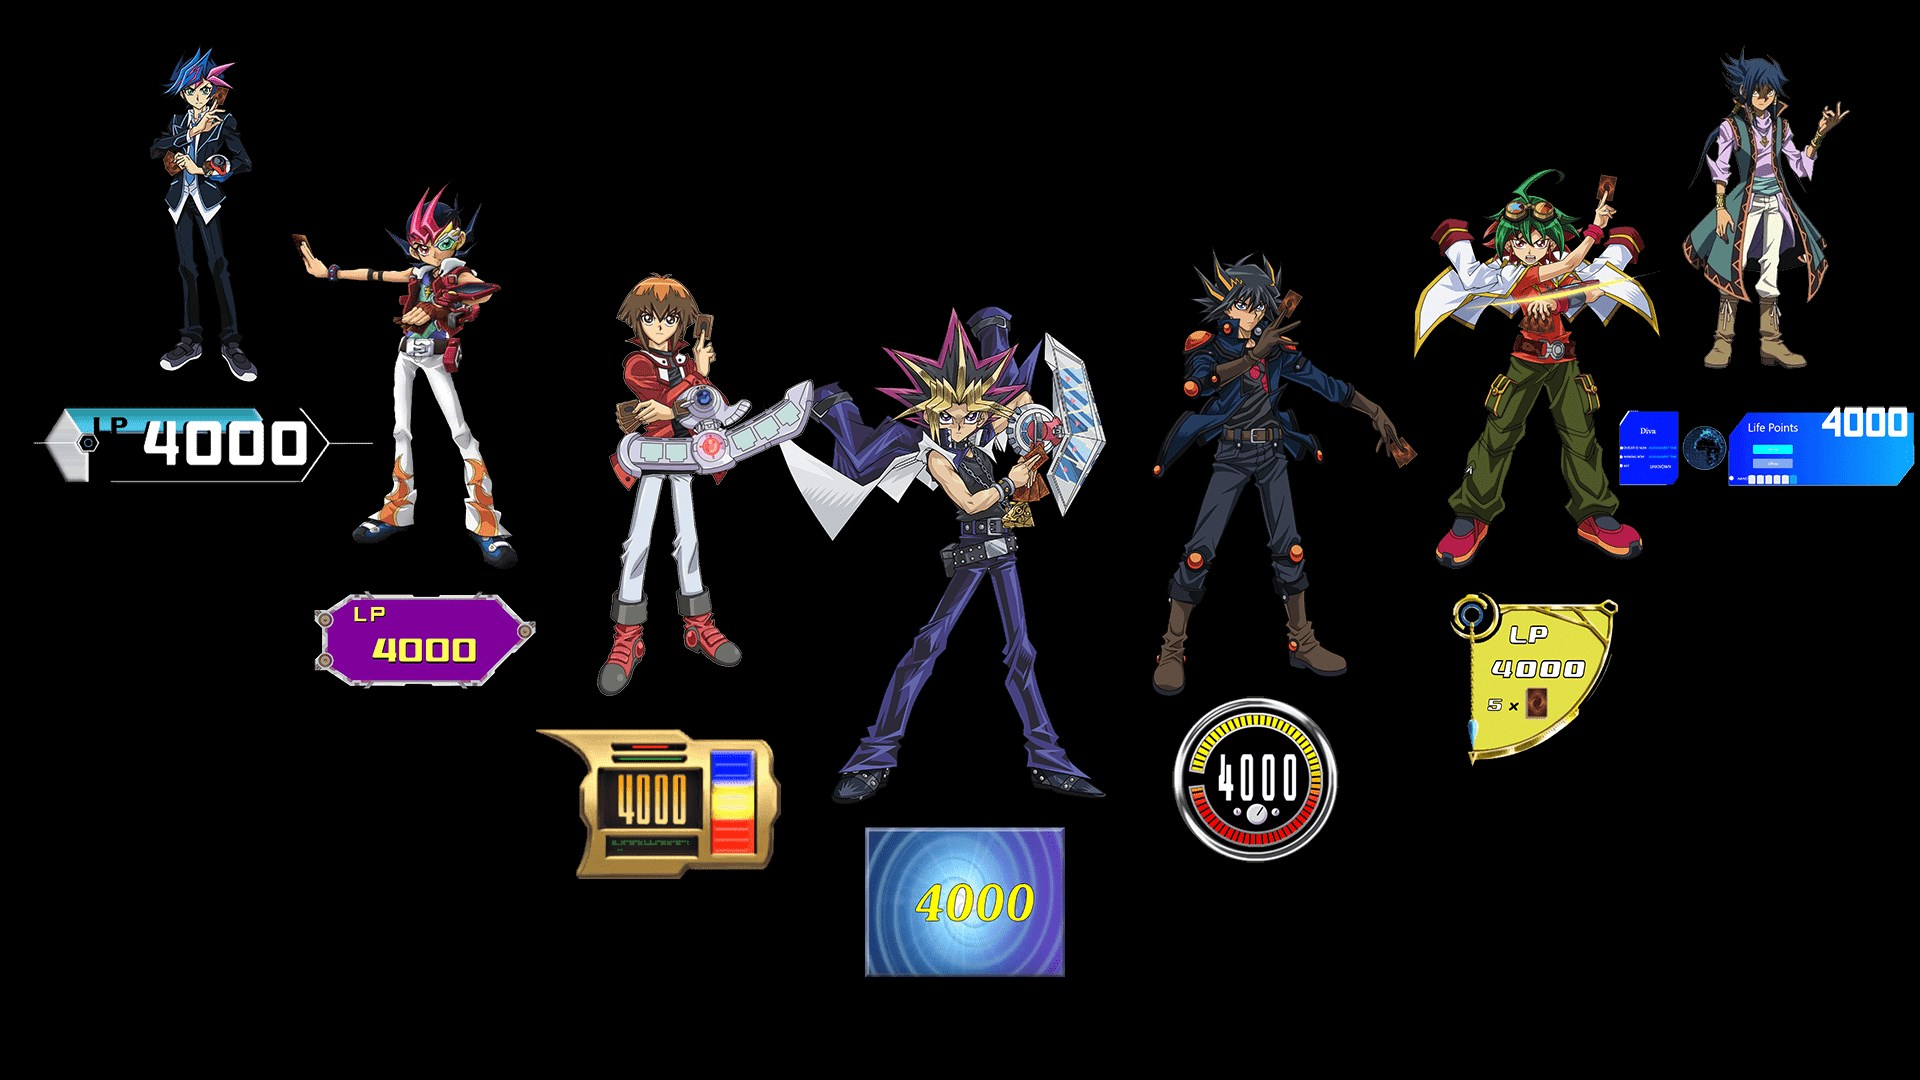 Get Yu Gi Oh Life Points Counter - Microsoft Store